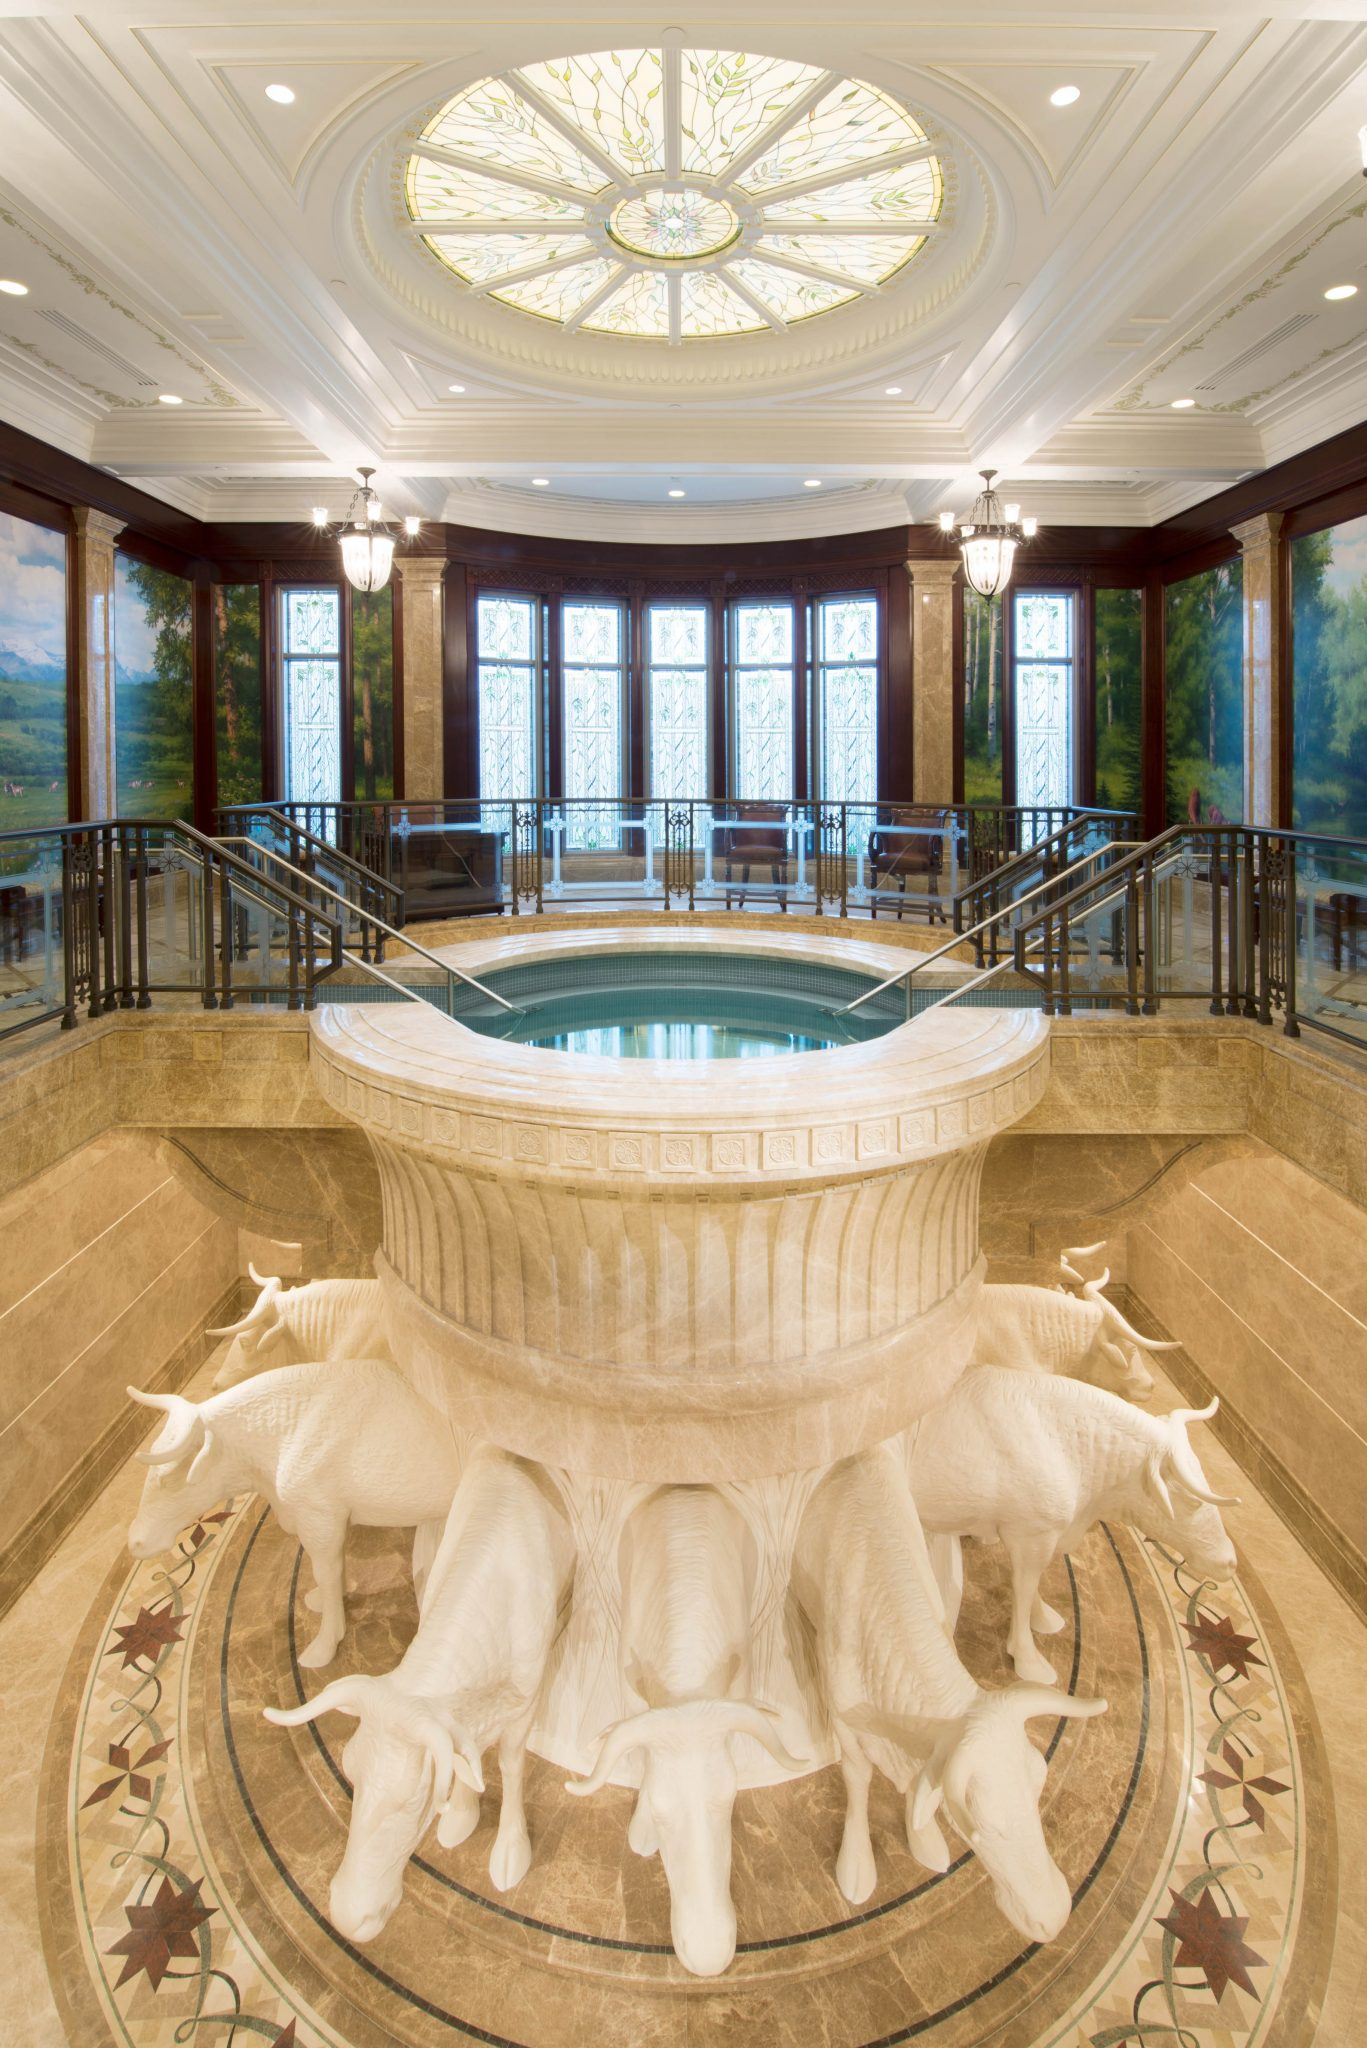 Photos first look inside the payson utah temple lds daily for Inside pictures